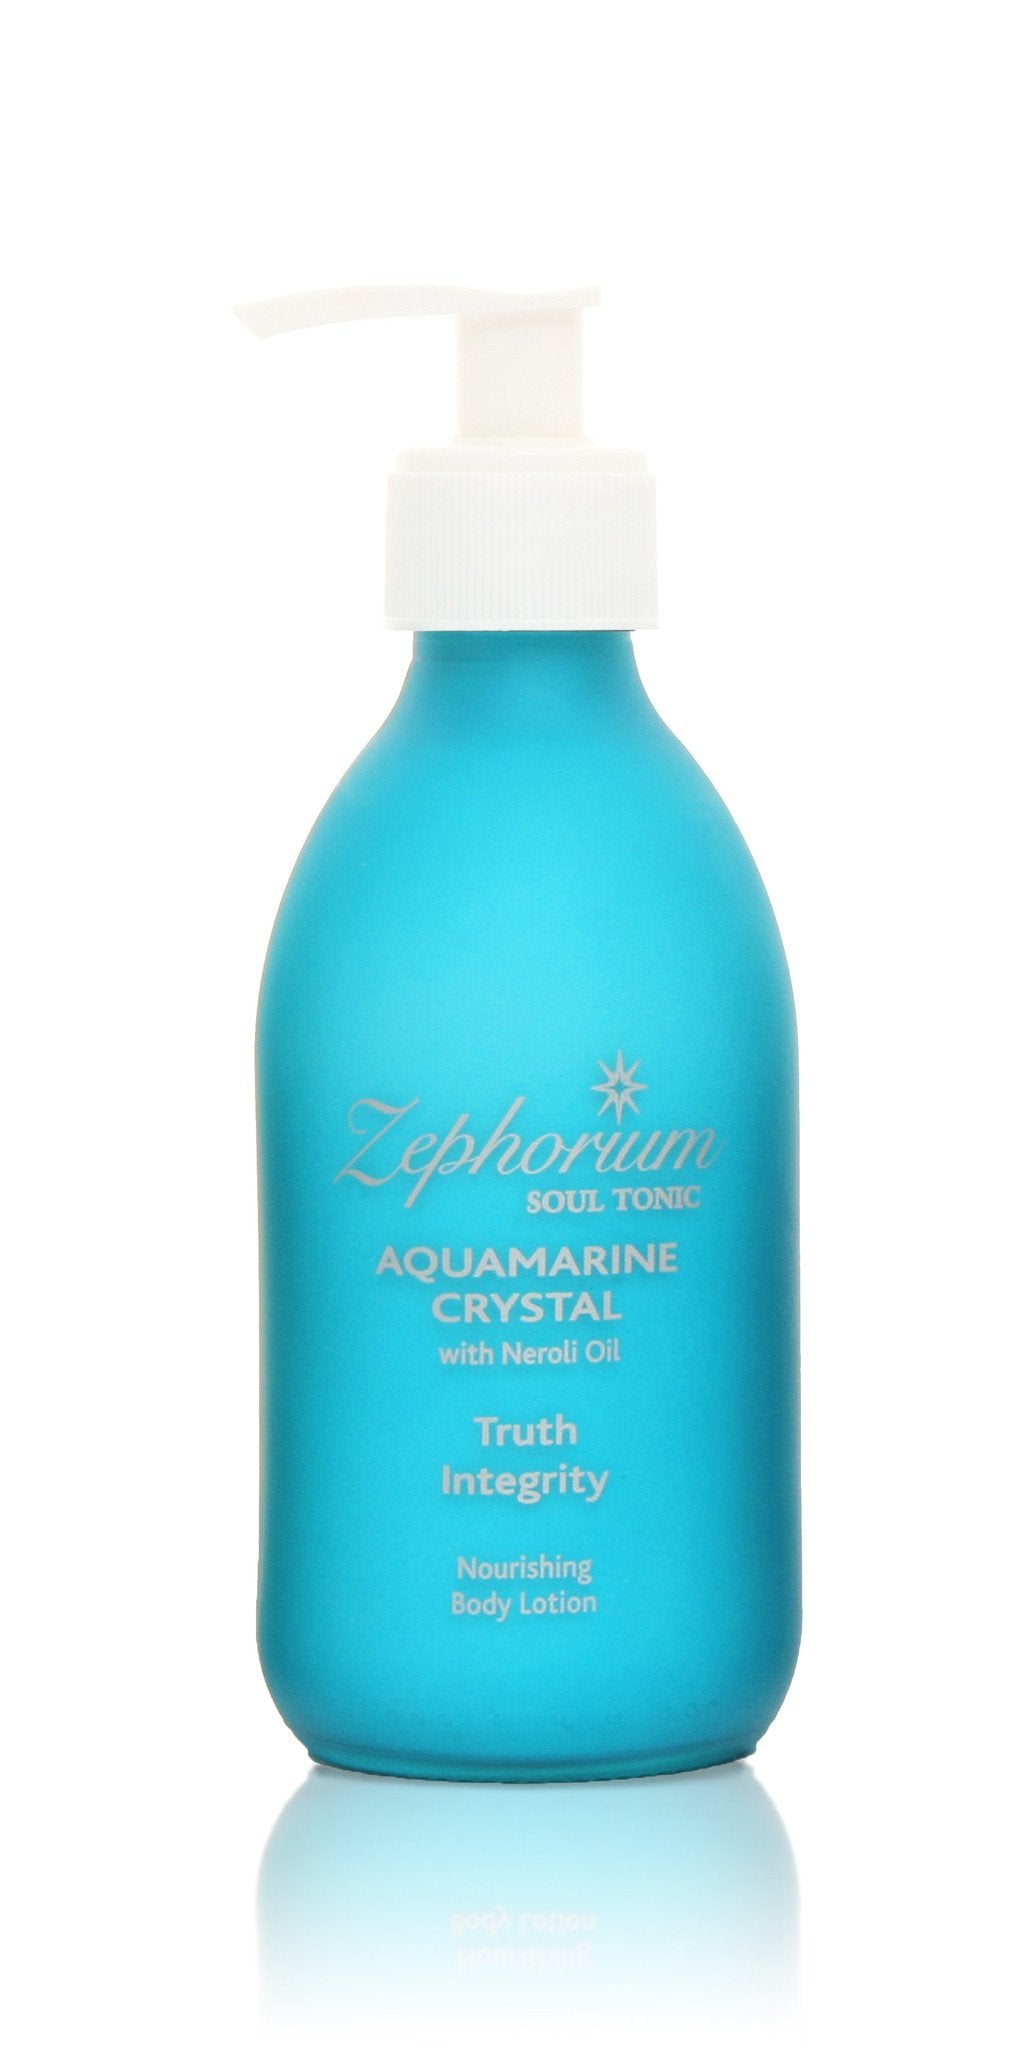 Aquamarine Crystal Body Lotion 250ml